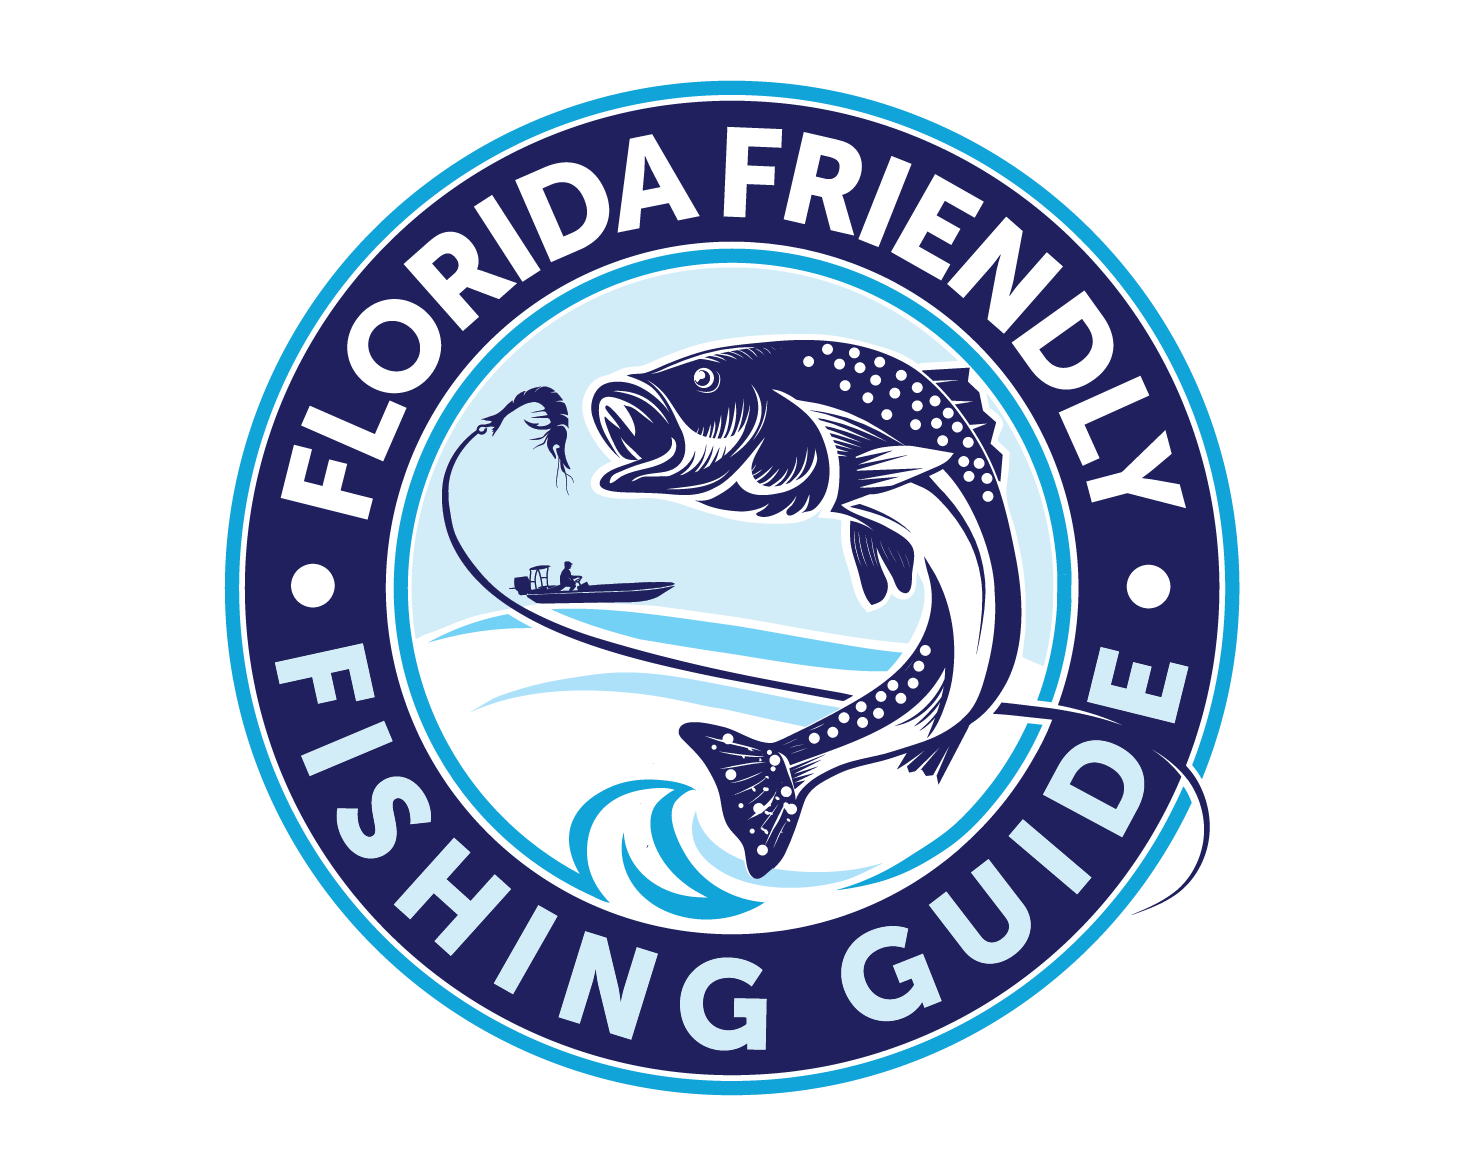 Florida Friendly Fishing Guide